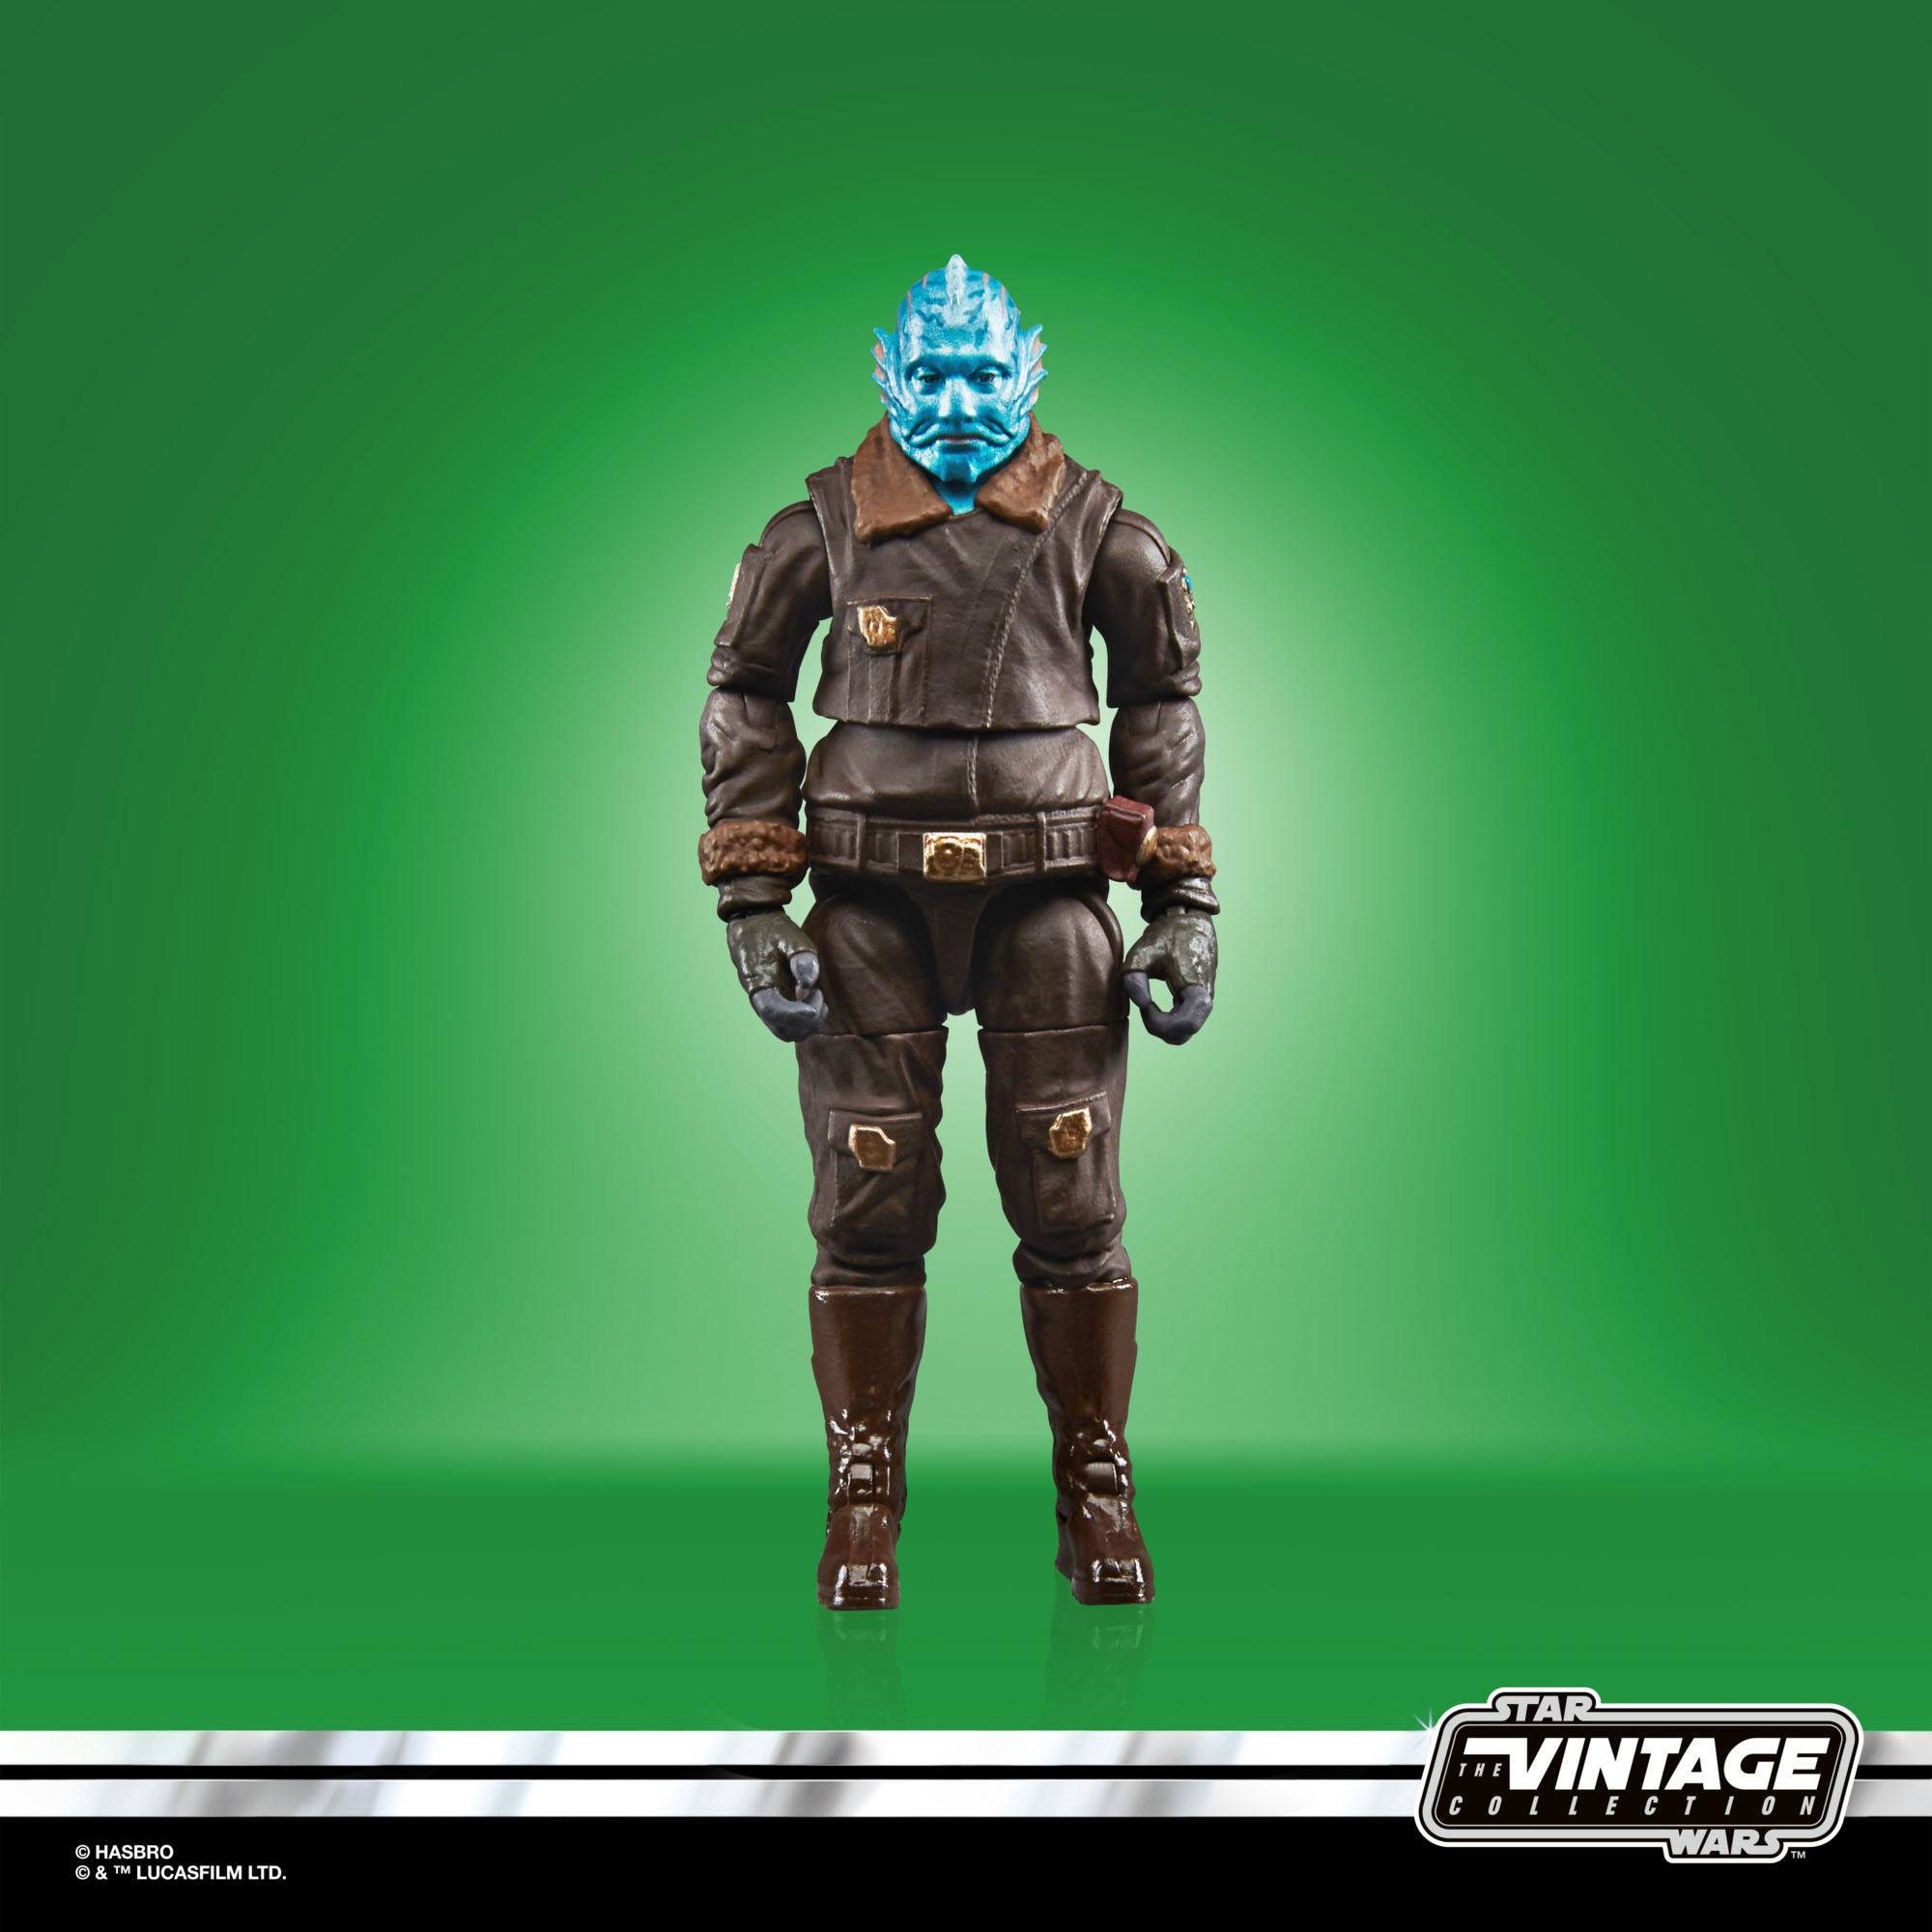 Star Wars The Mandalorian Vintage Collection Actionfigur 2022 The Mythrol 10 cm HASF4464 5010993958016